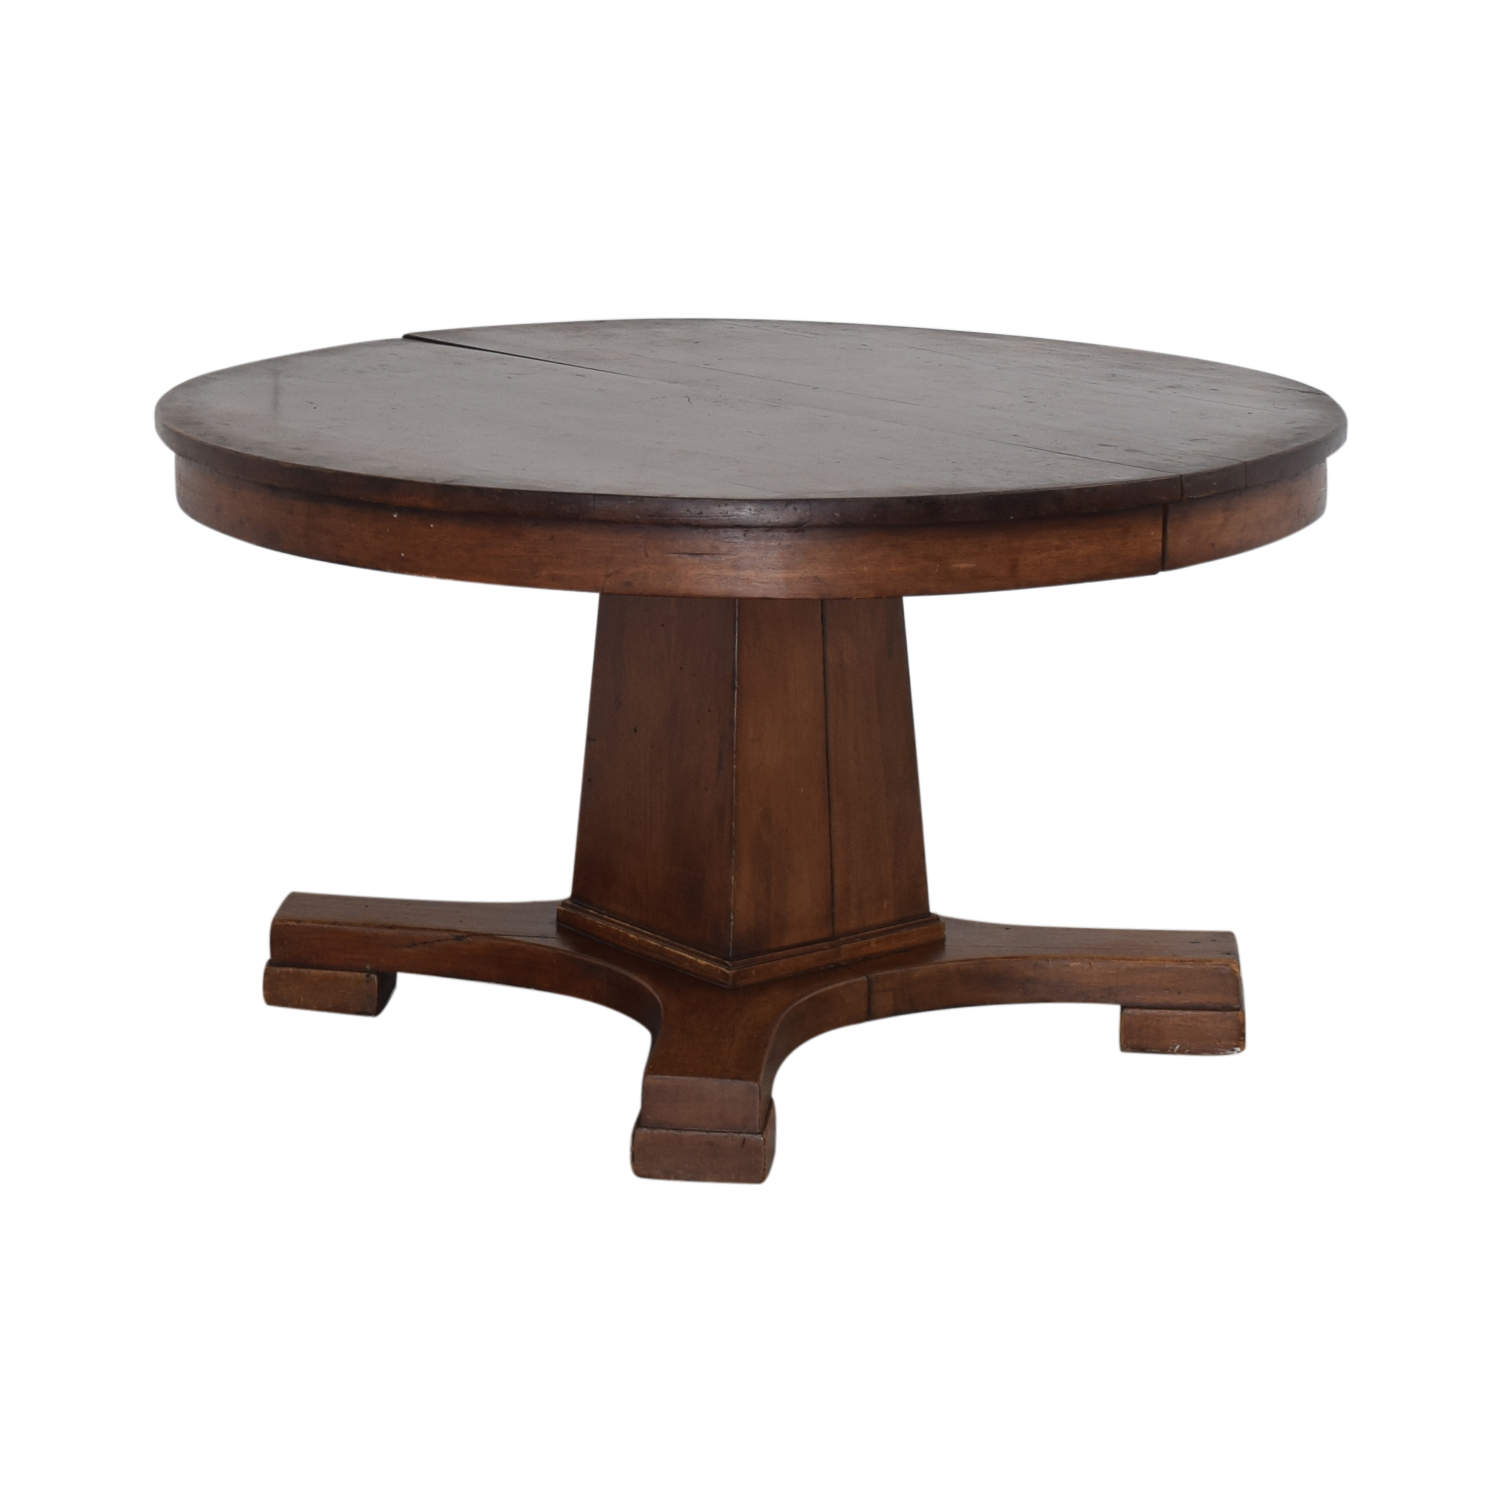 88% OFF   Vintage Round Pedestal Dining Table / Tables